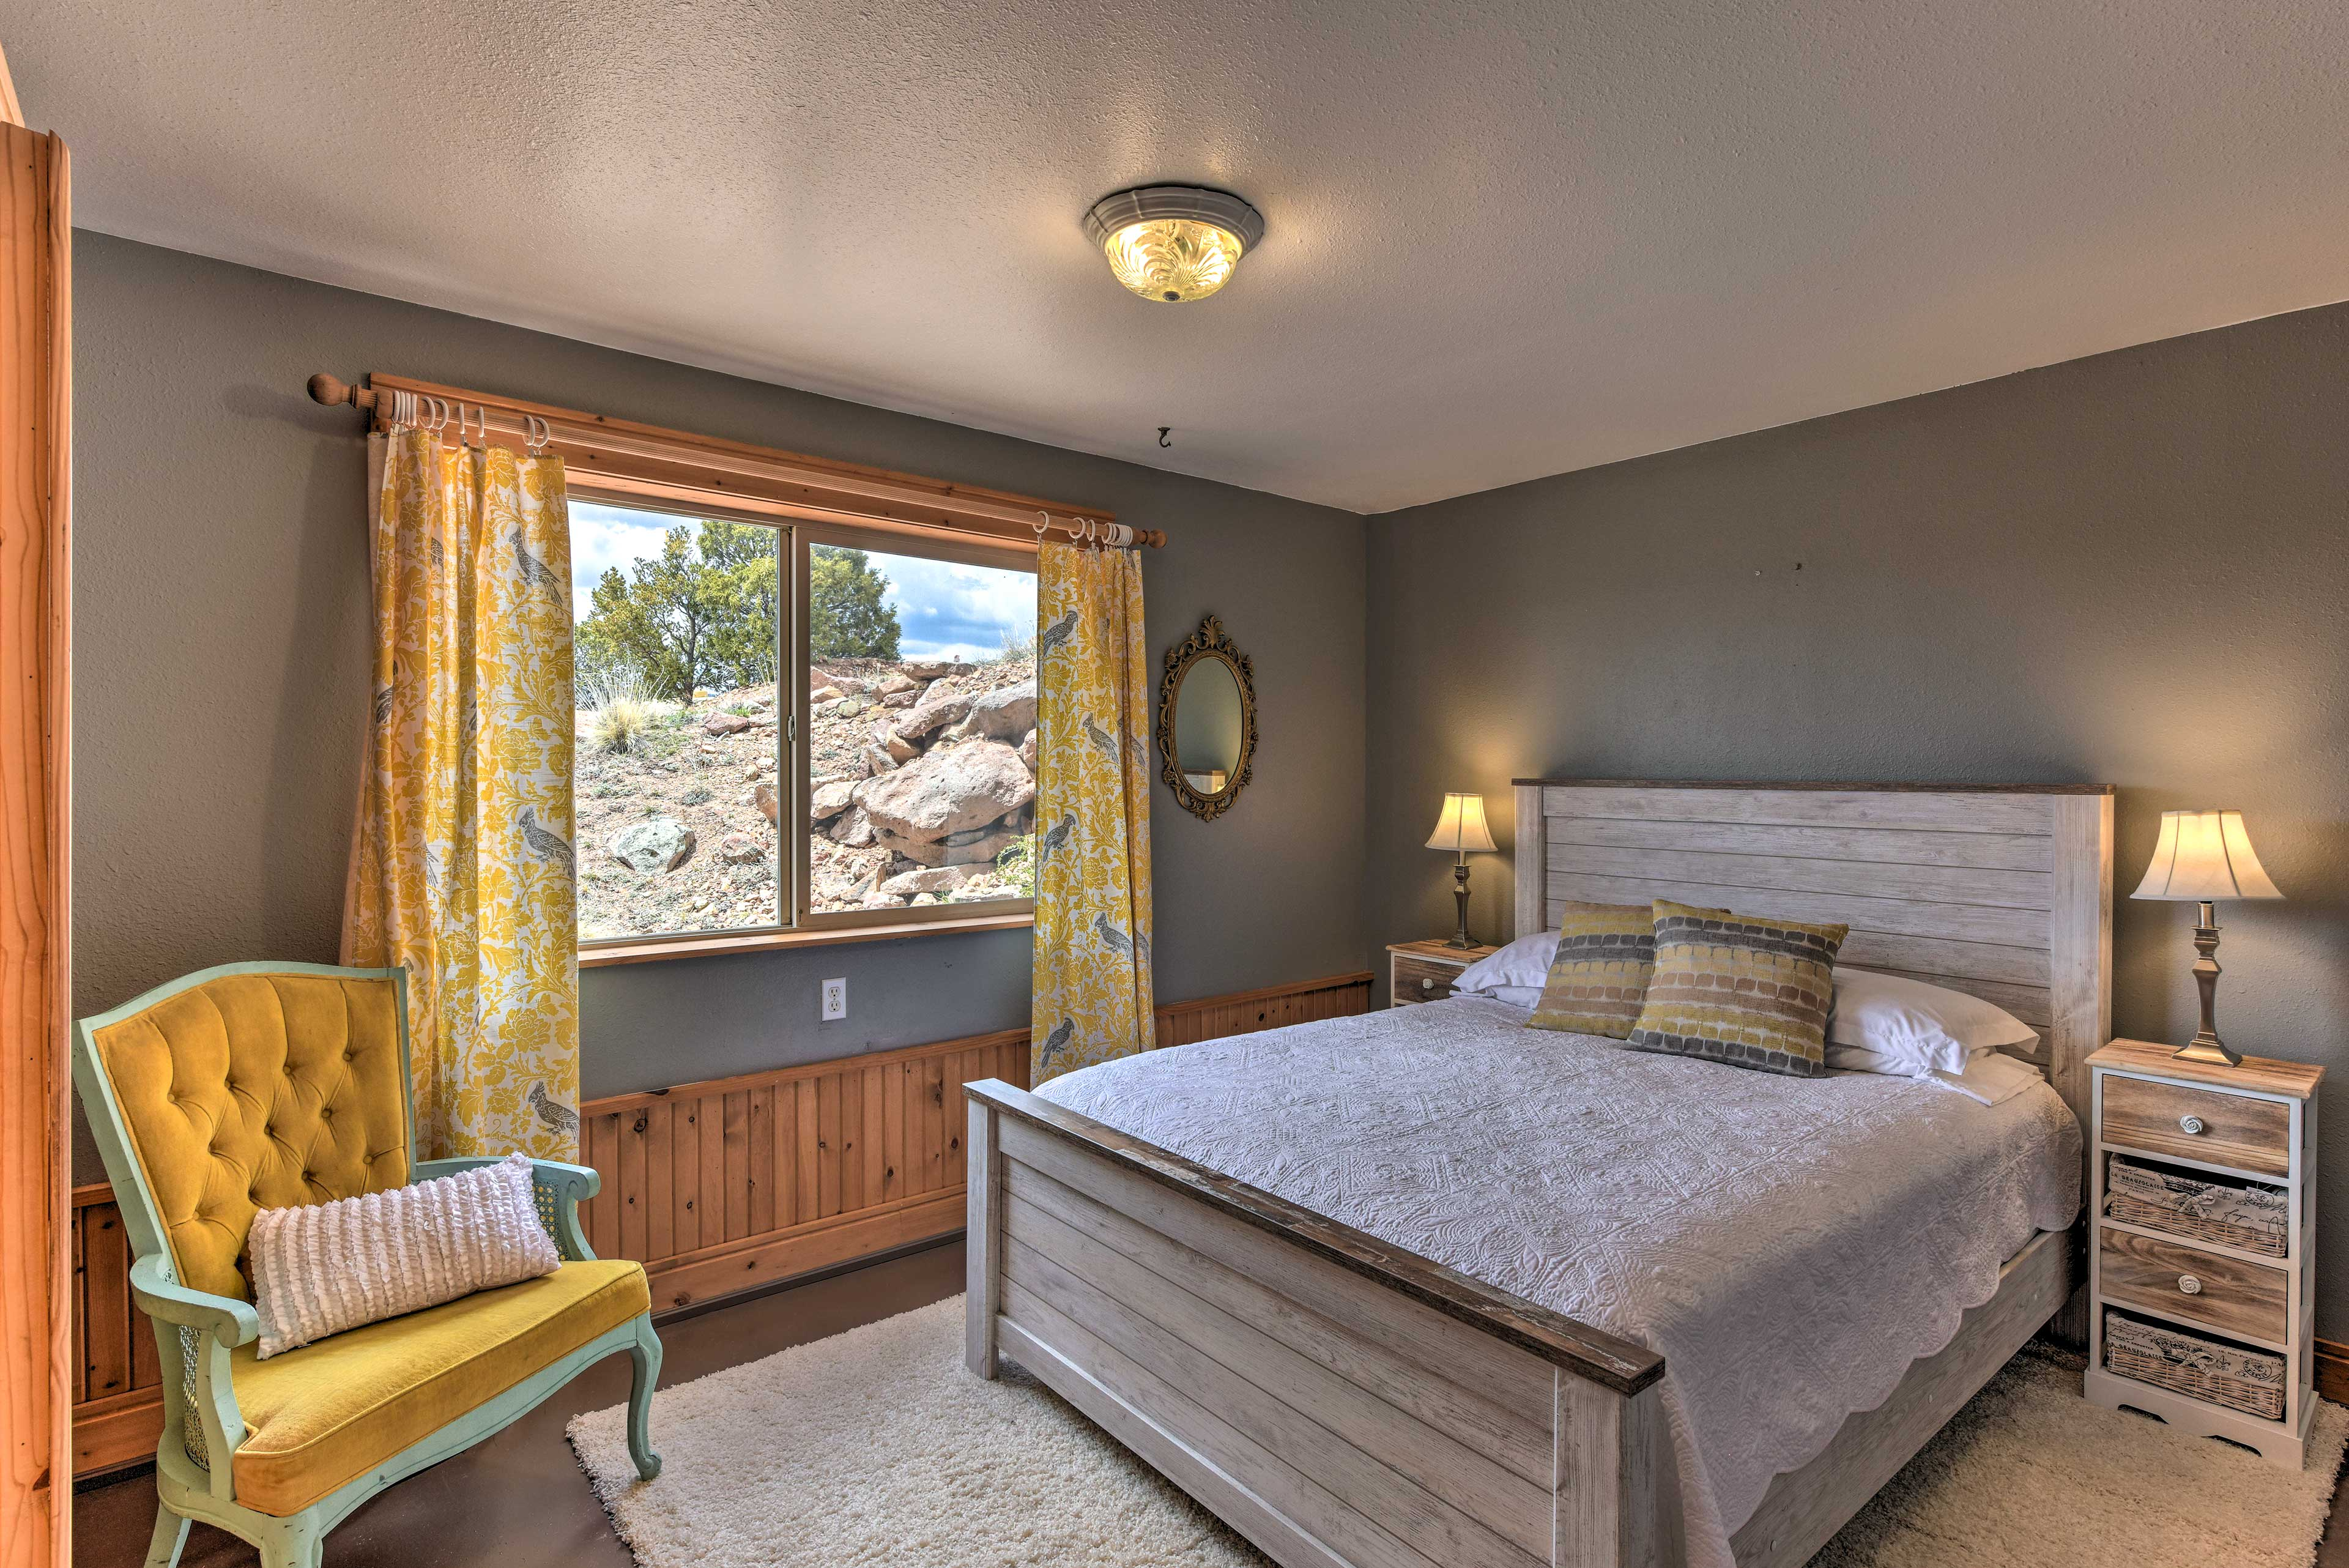 Located steps from the basement living area, this bedroom boasts a full bed.